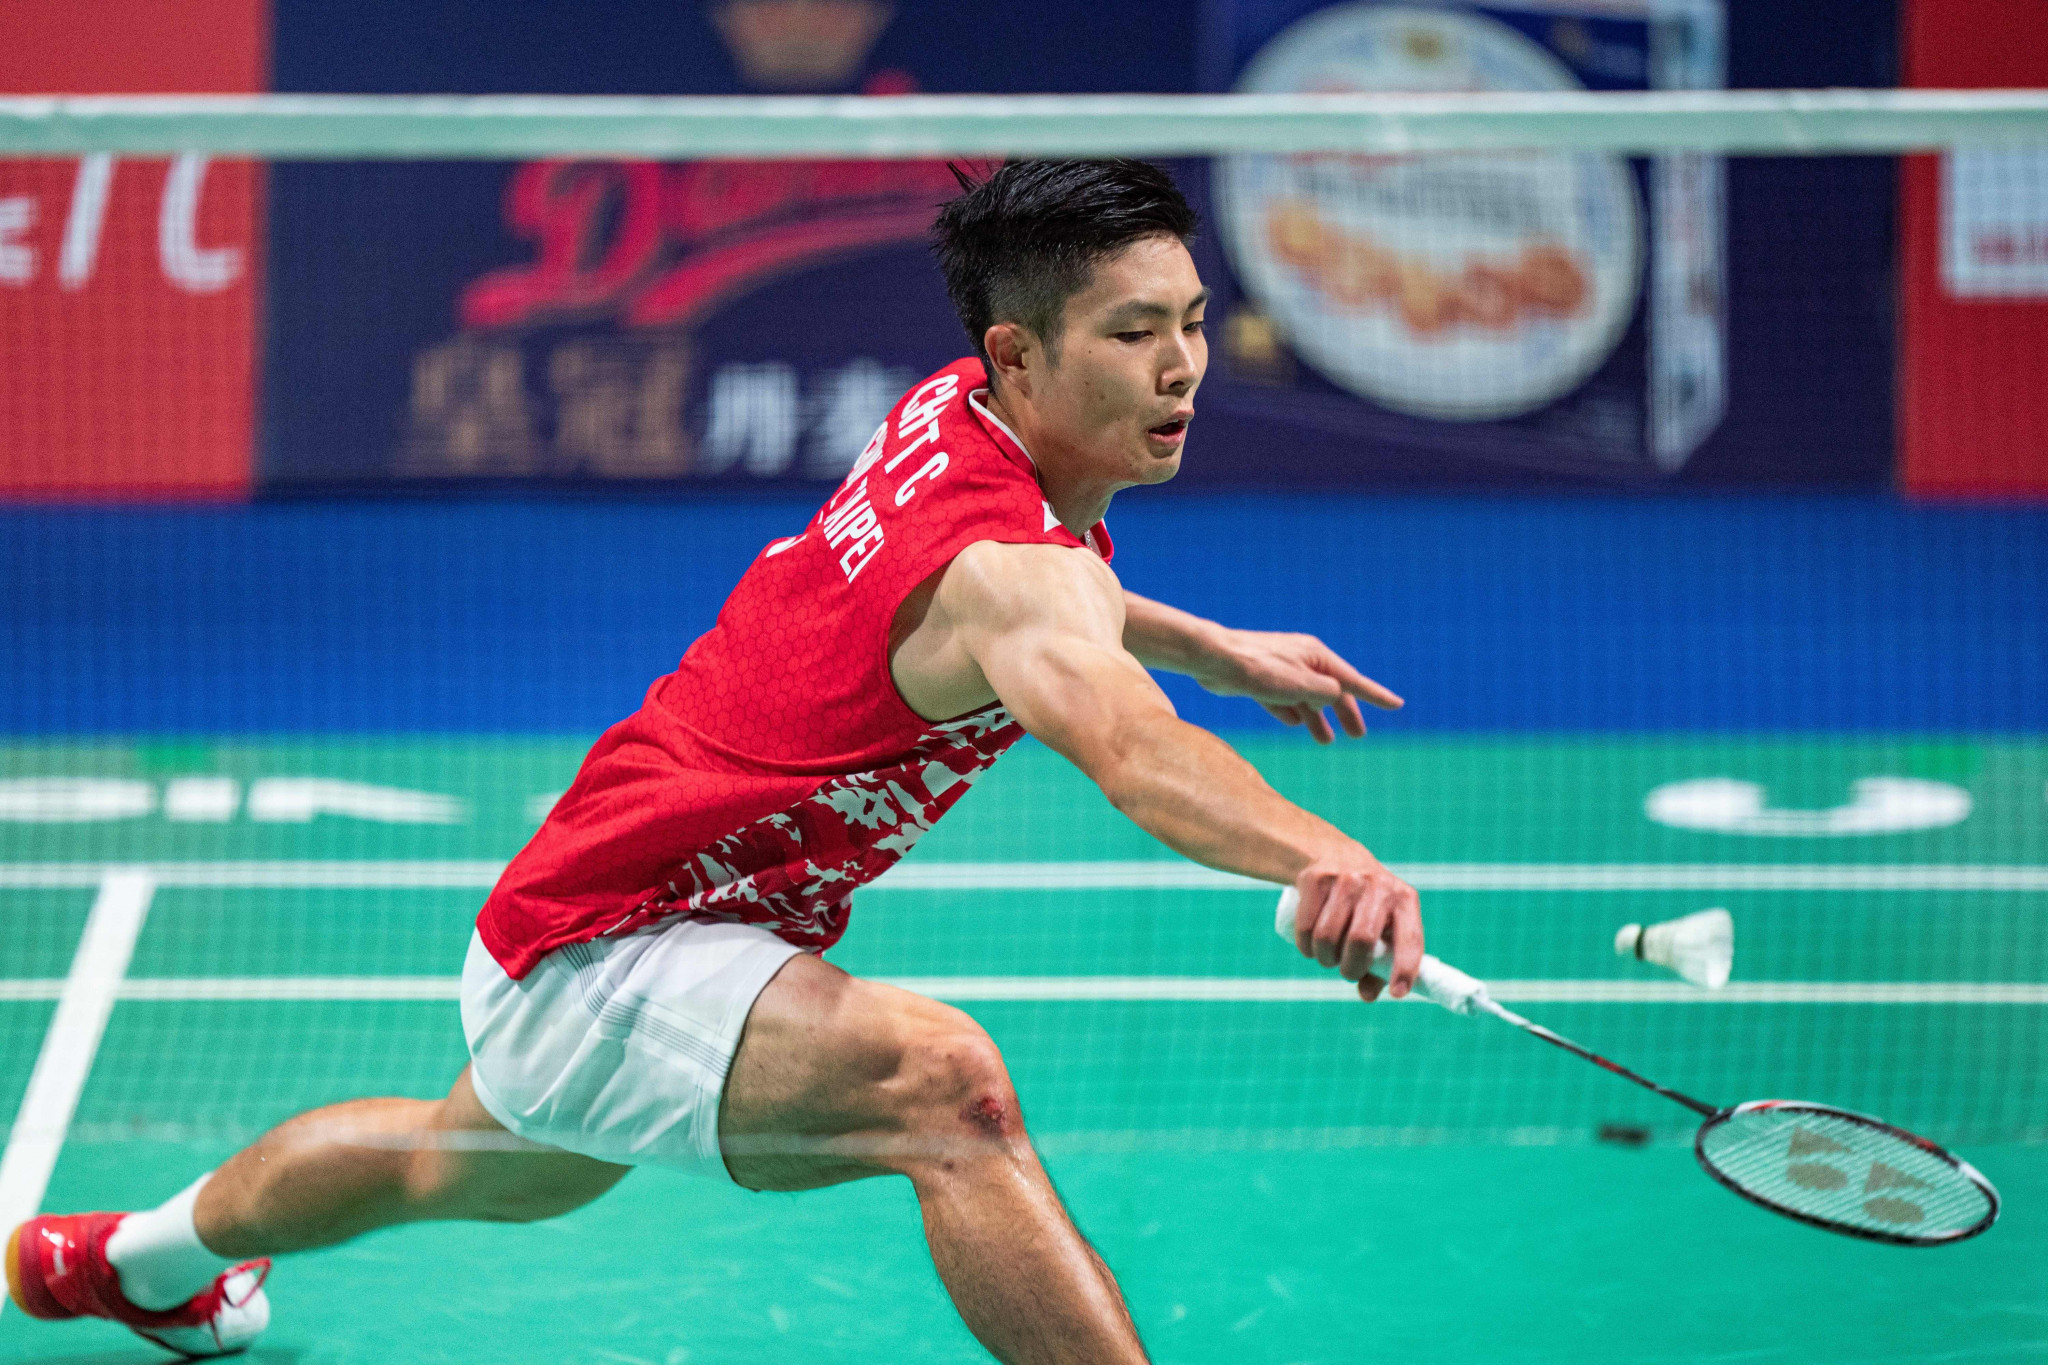 Chou Tien Chen won a tight match against India's Srikanth Kidambi to reach the last four ©Getty Images